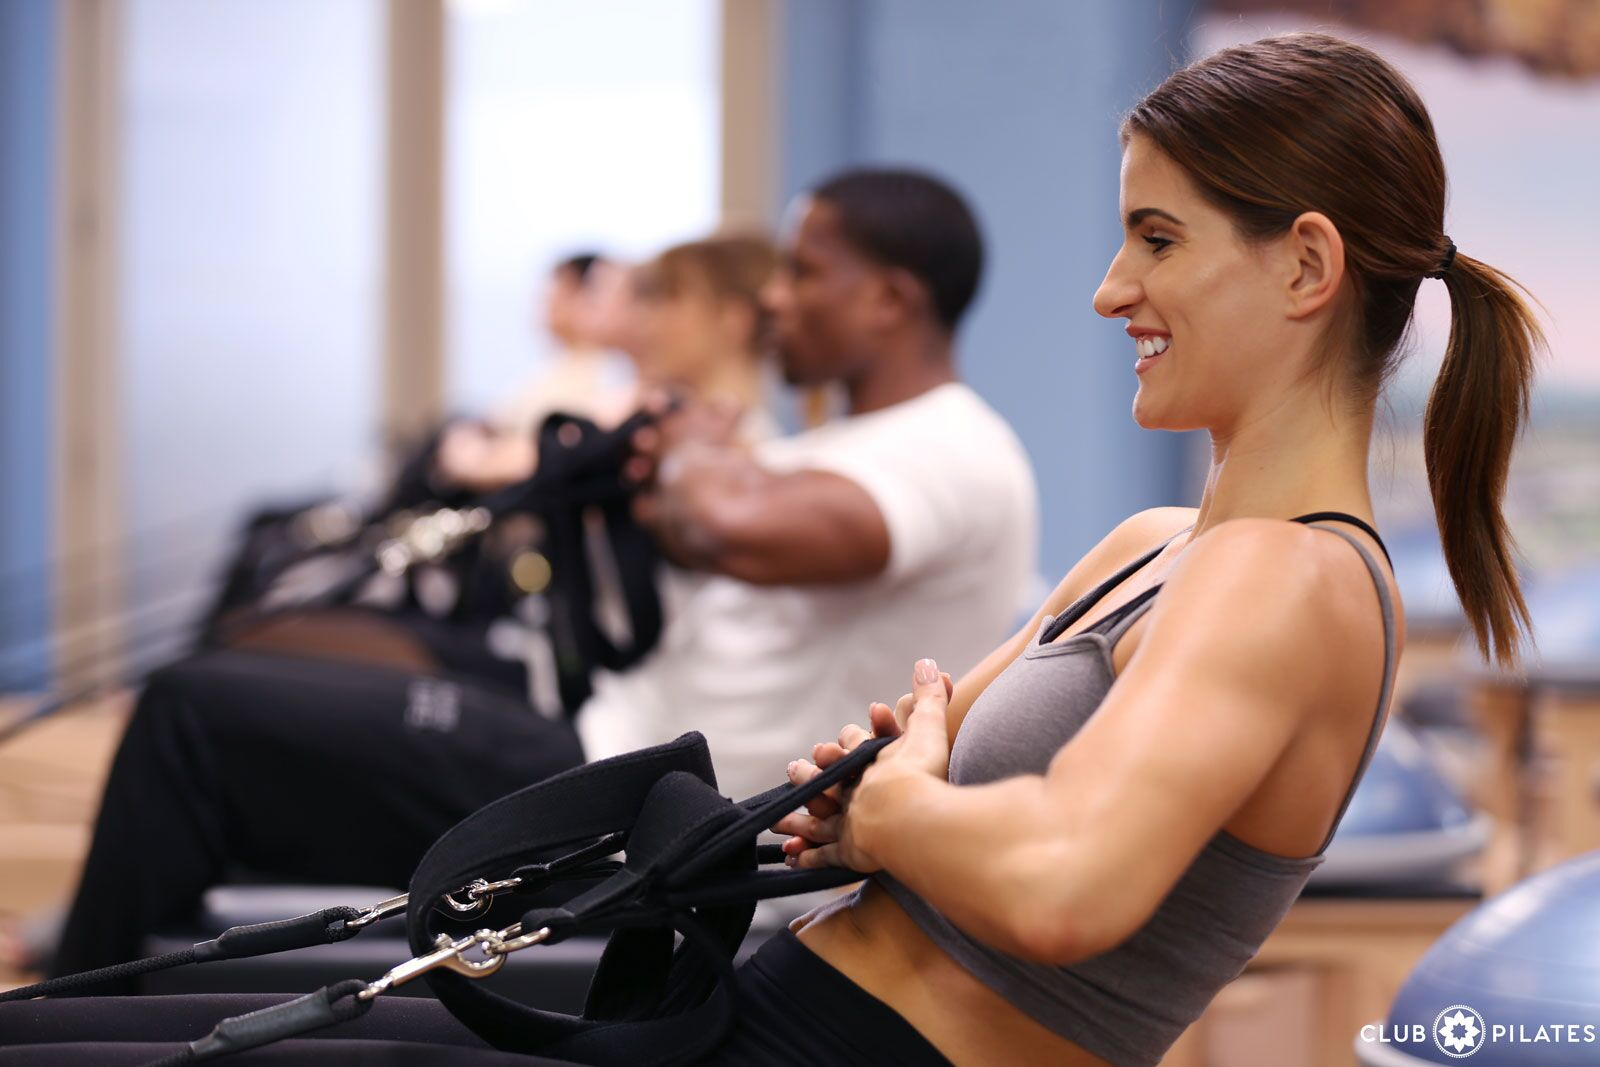 Club Pilates, a reformer-based Pilates studio founded in Costa Mesa, CA in 2007, is bringing its 50-minute modernized Pilates classes to the DMV with the opening of a location in Pentagon City. (Image: Courtesy Club Pilates)